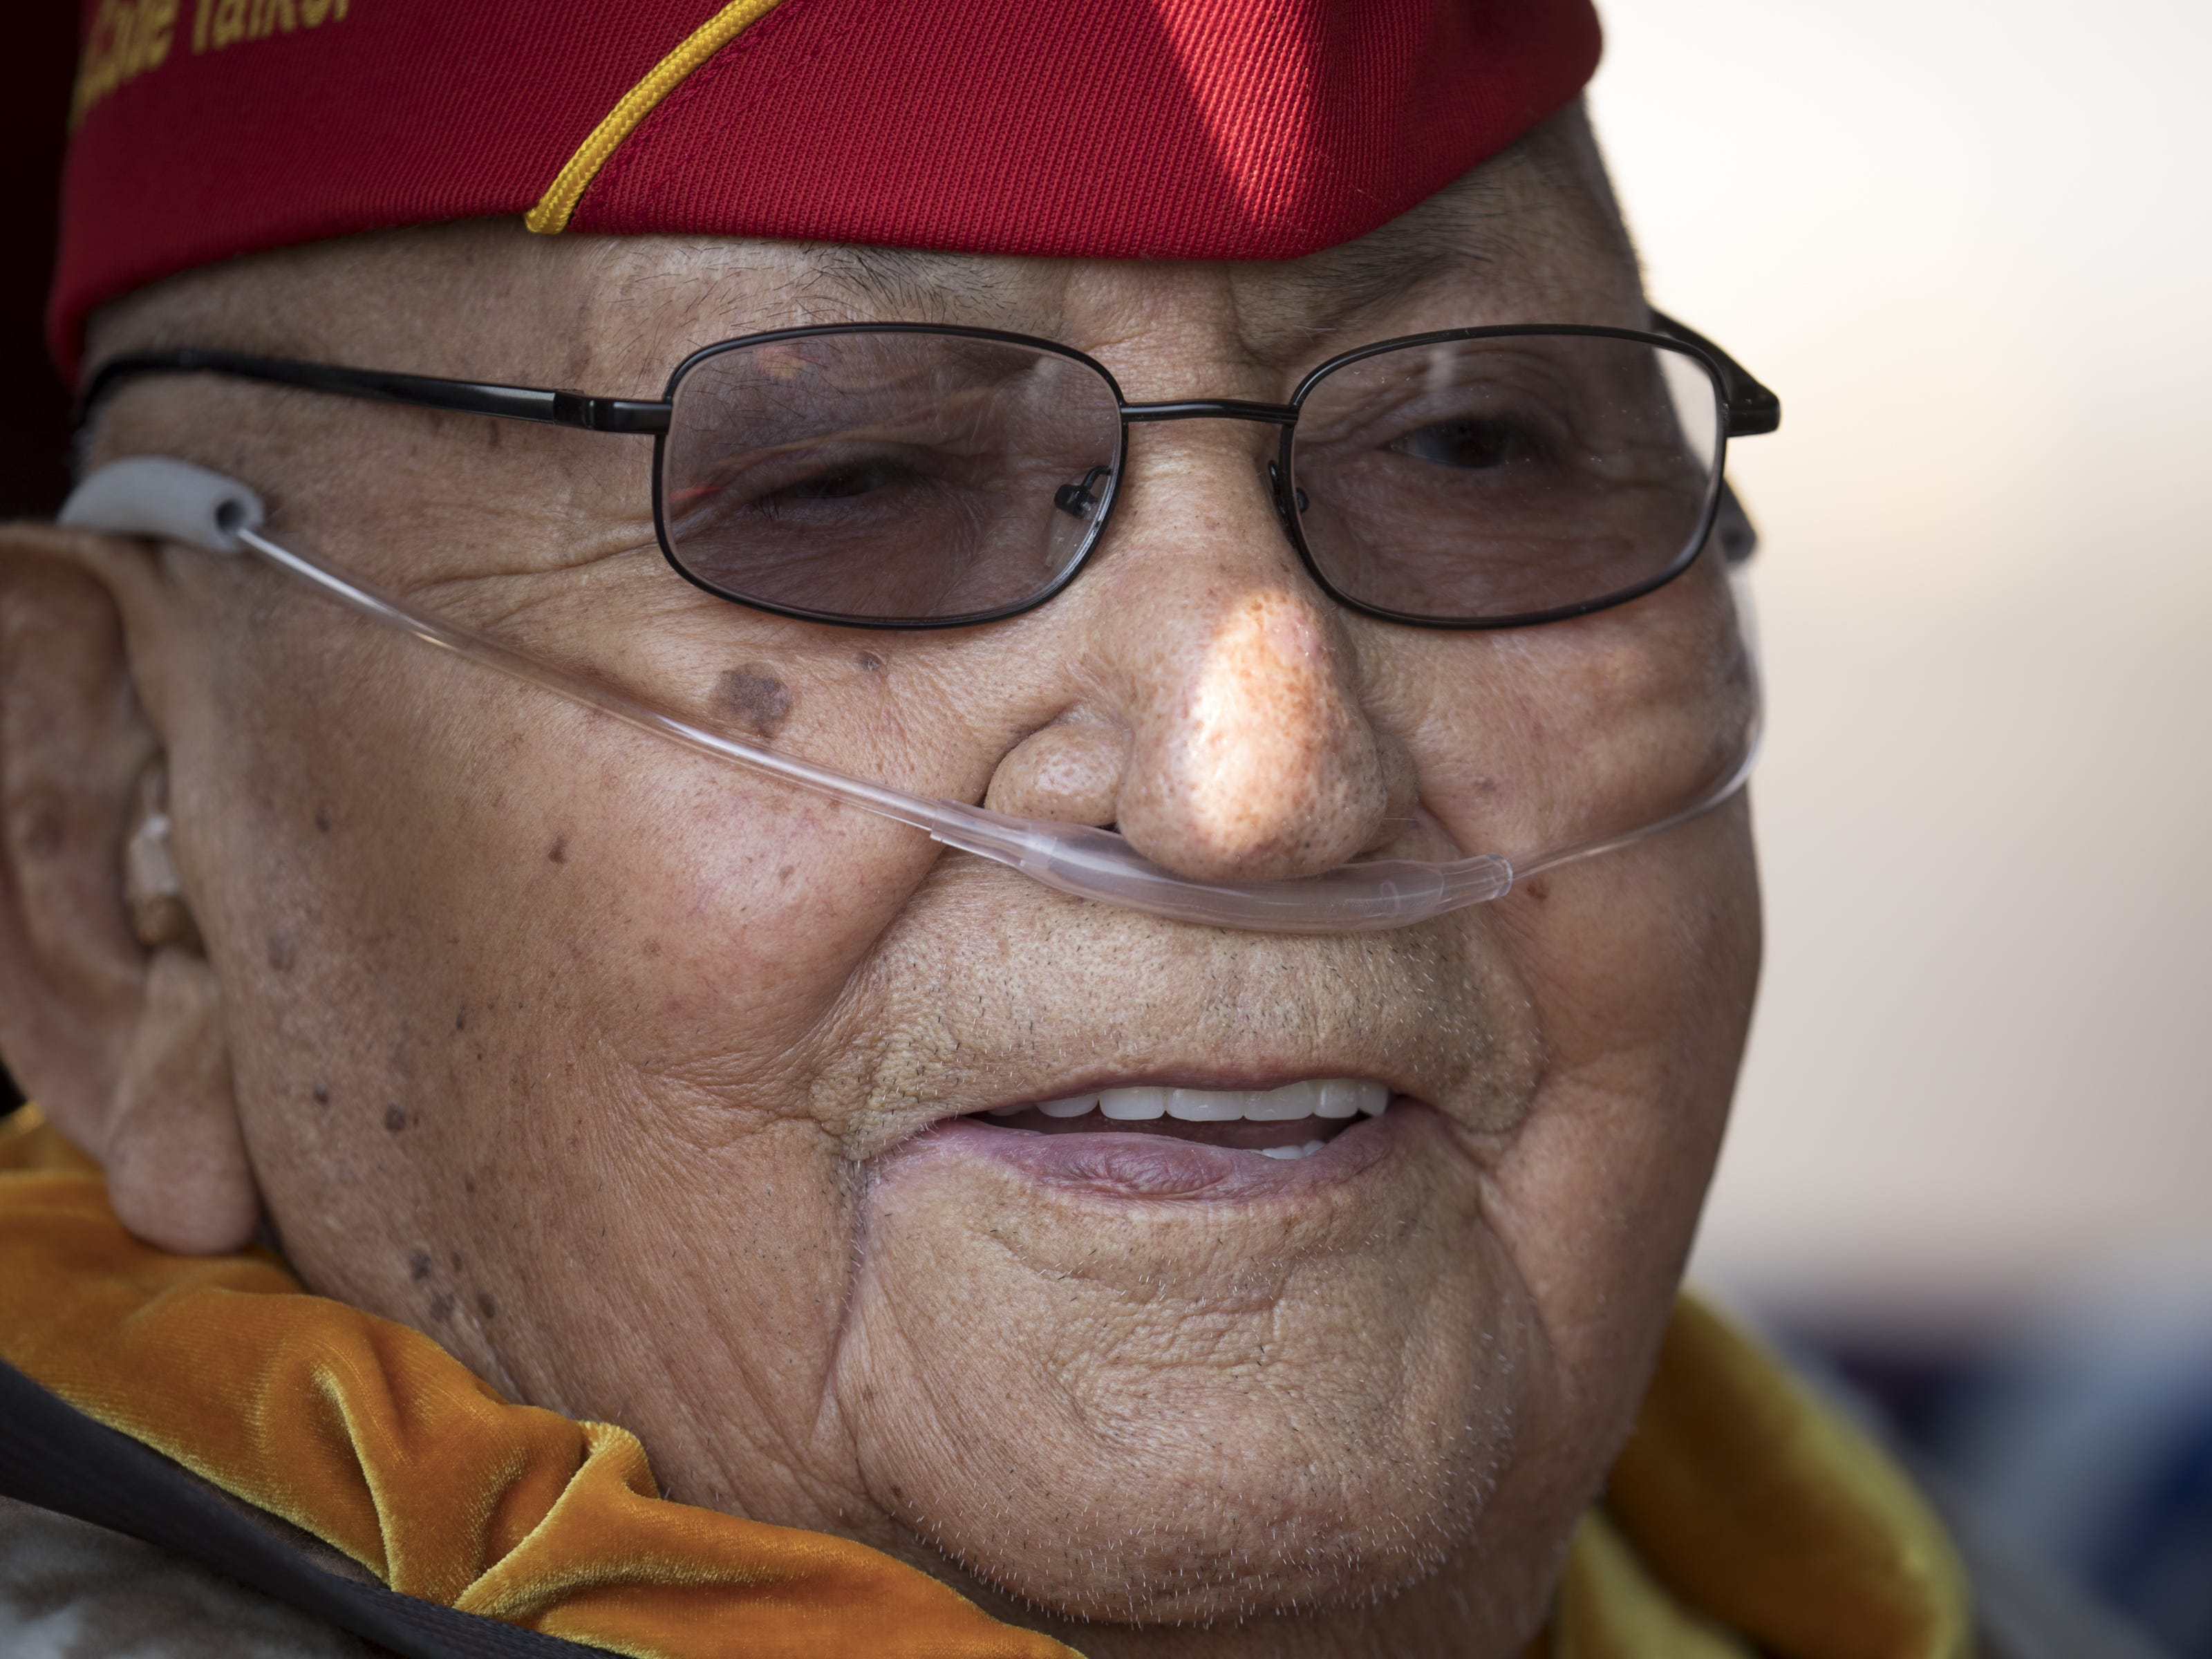 Navajo Code Talker Joe Vandever, Sr waits for the start of the Navajo Nation Code Talkers Day parade on Aug. 14, 2018, at the Navajo Nation Fairgrounds in Window Rock.